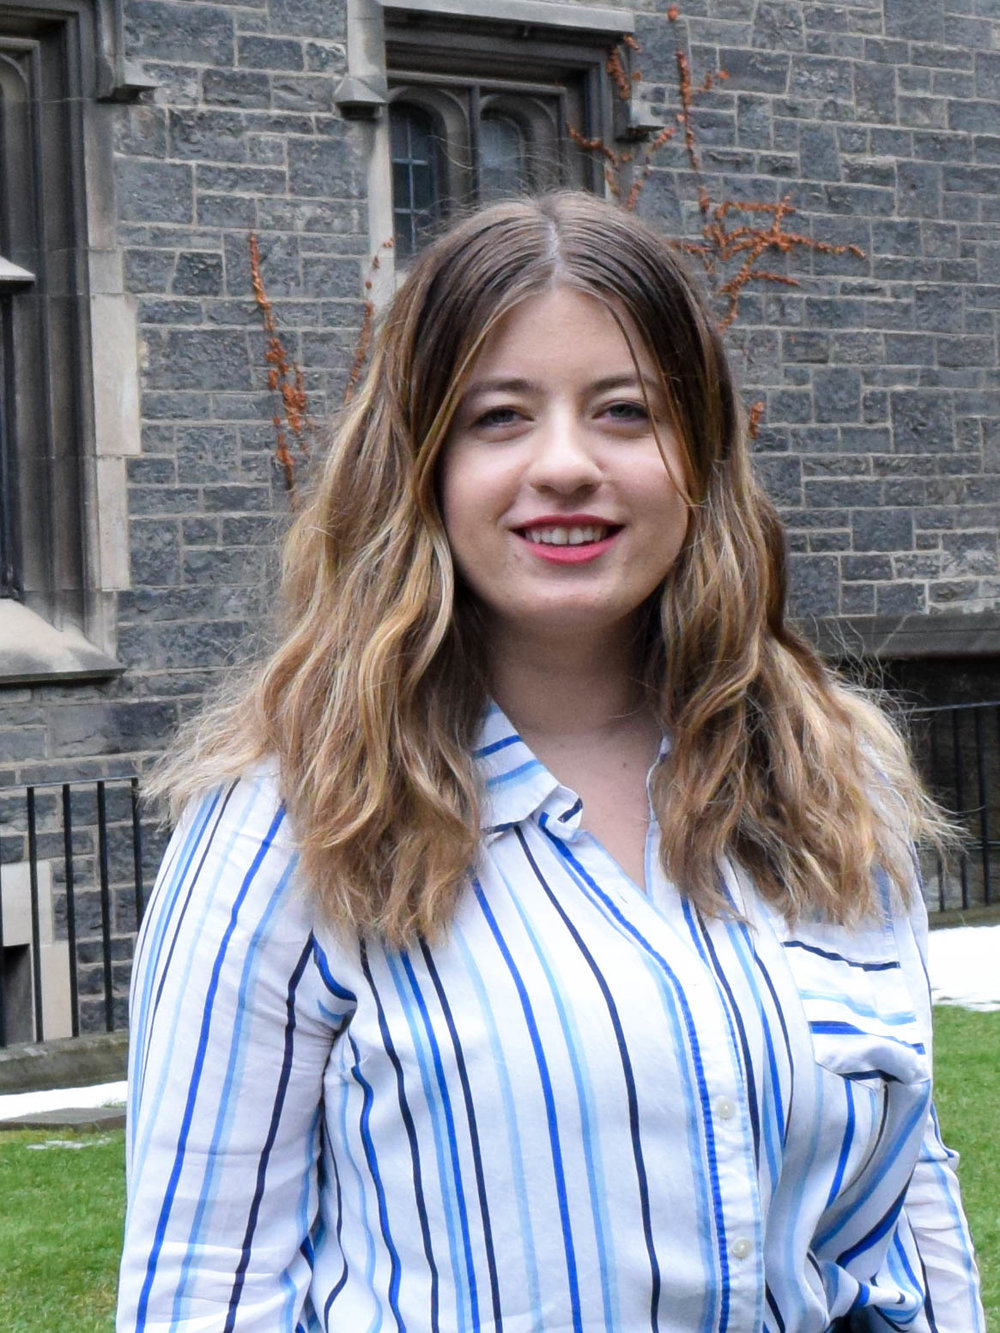 Serena Ceco is in her fourth year at Trinity College, pursuing a double major in Political Science and International Relations. Her research interests include international security and global governance. Serena is also President of Voice of Women for Peace at the University of Toronto. She is thrilled for an exciting year ahead with the Association of Political Science Students.